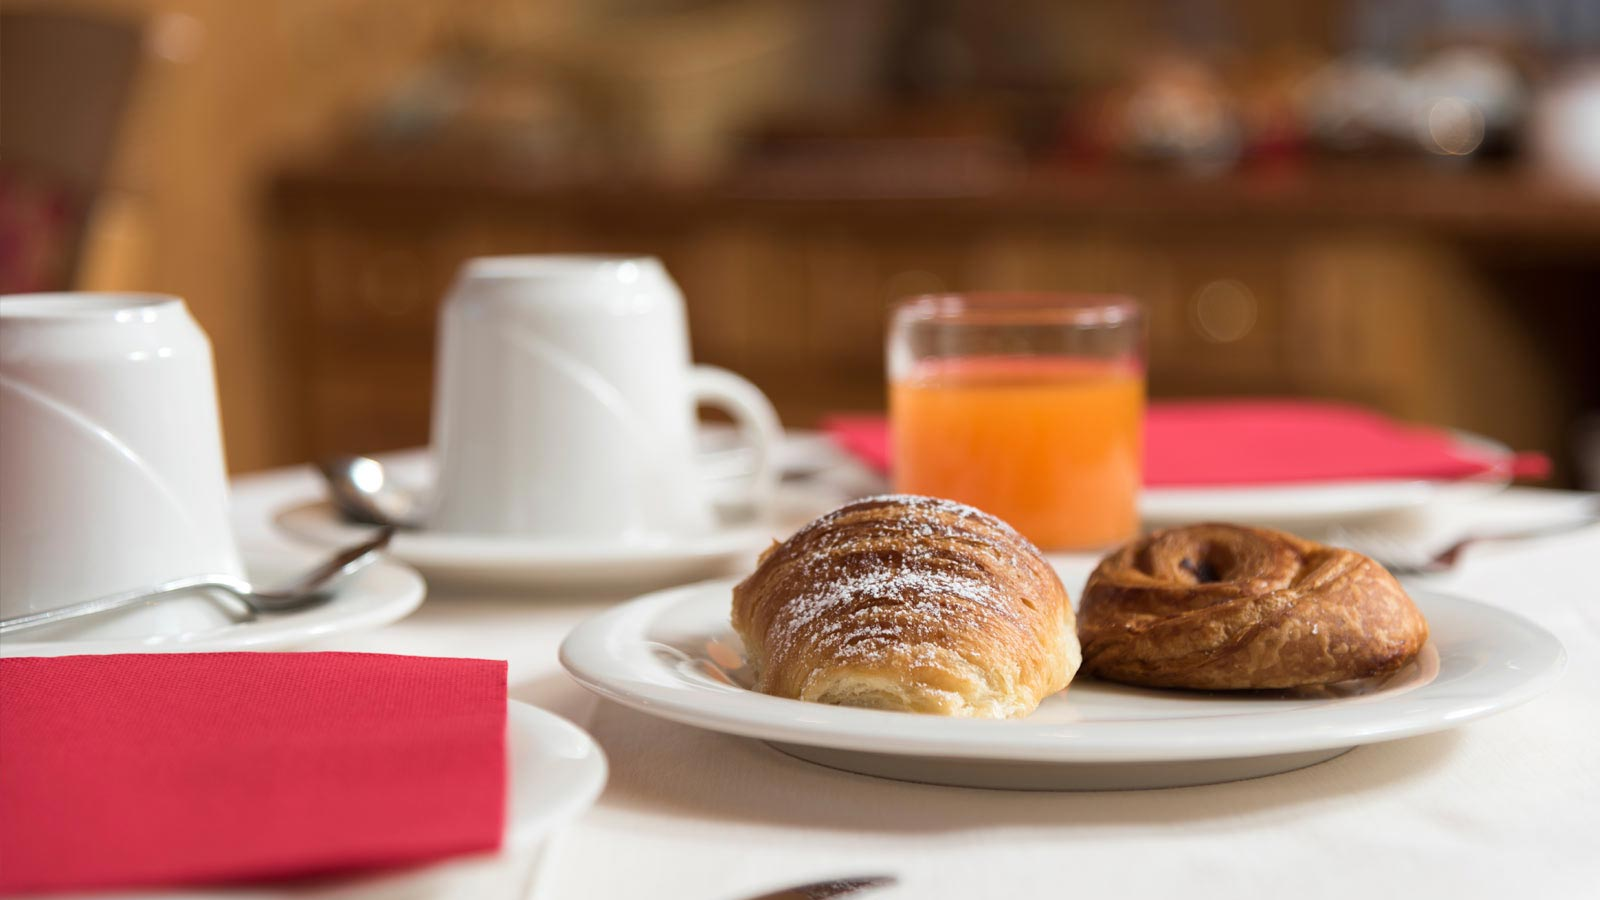 Table set for breakfast with croissants and orange juice